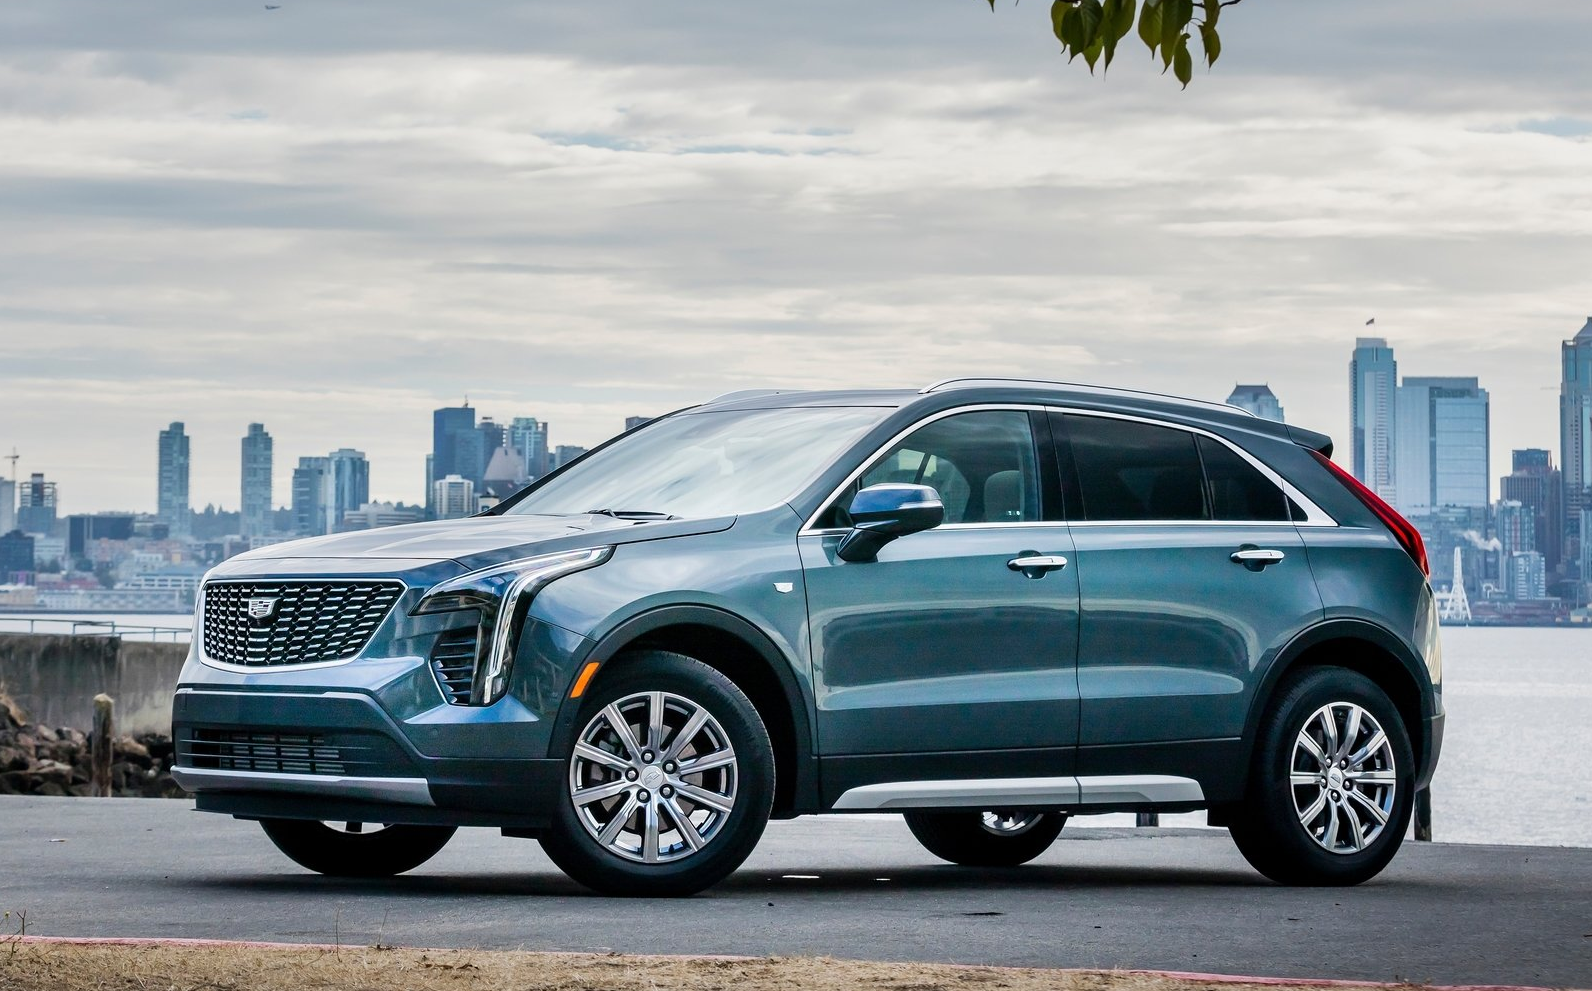 2019 Cadillac XT4: Attention to Details Great and Small